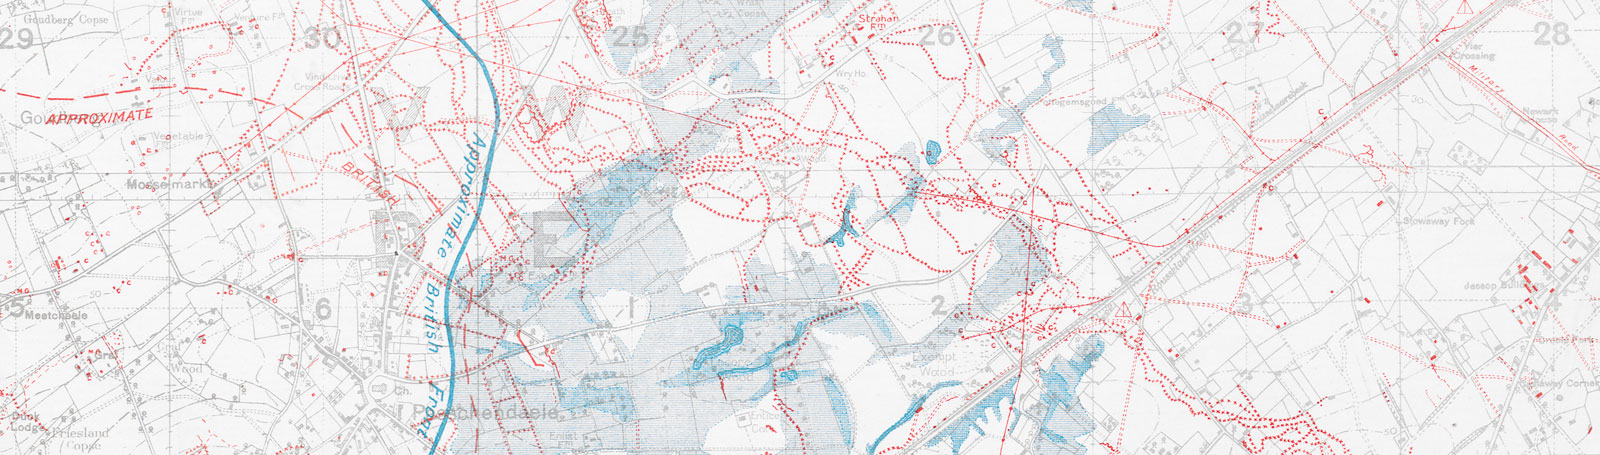 Logistics maps for the Western Front showing trenches, roads, water sources